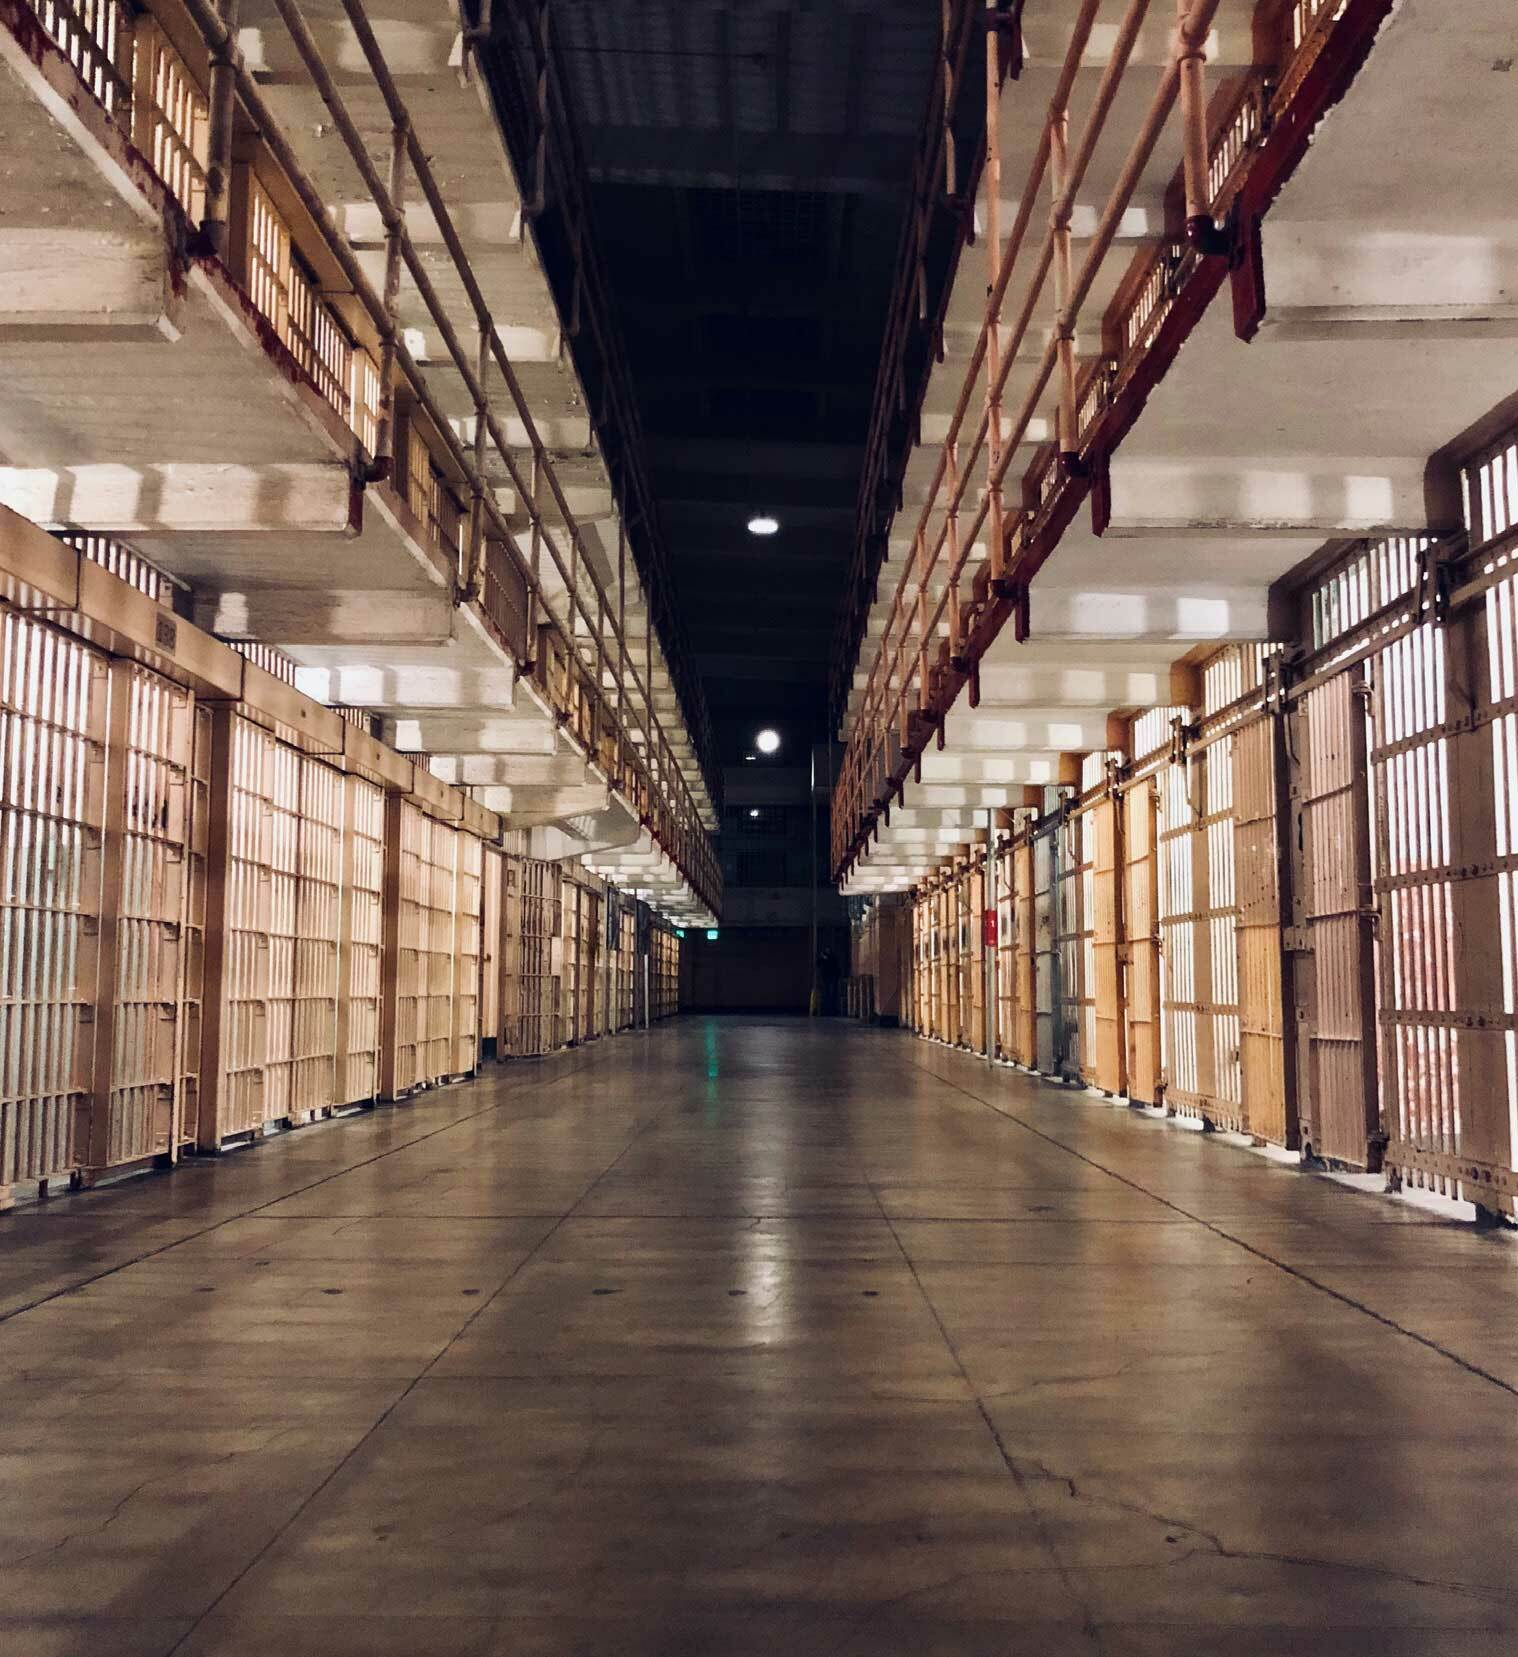 The view down a long hallway of jail cells in a prison in Georgia.